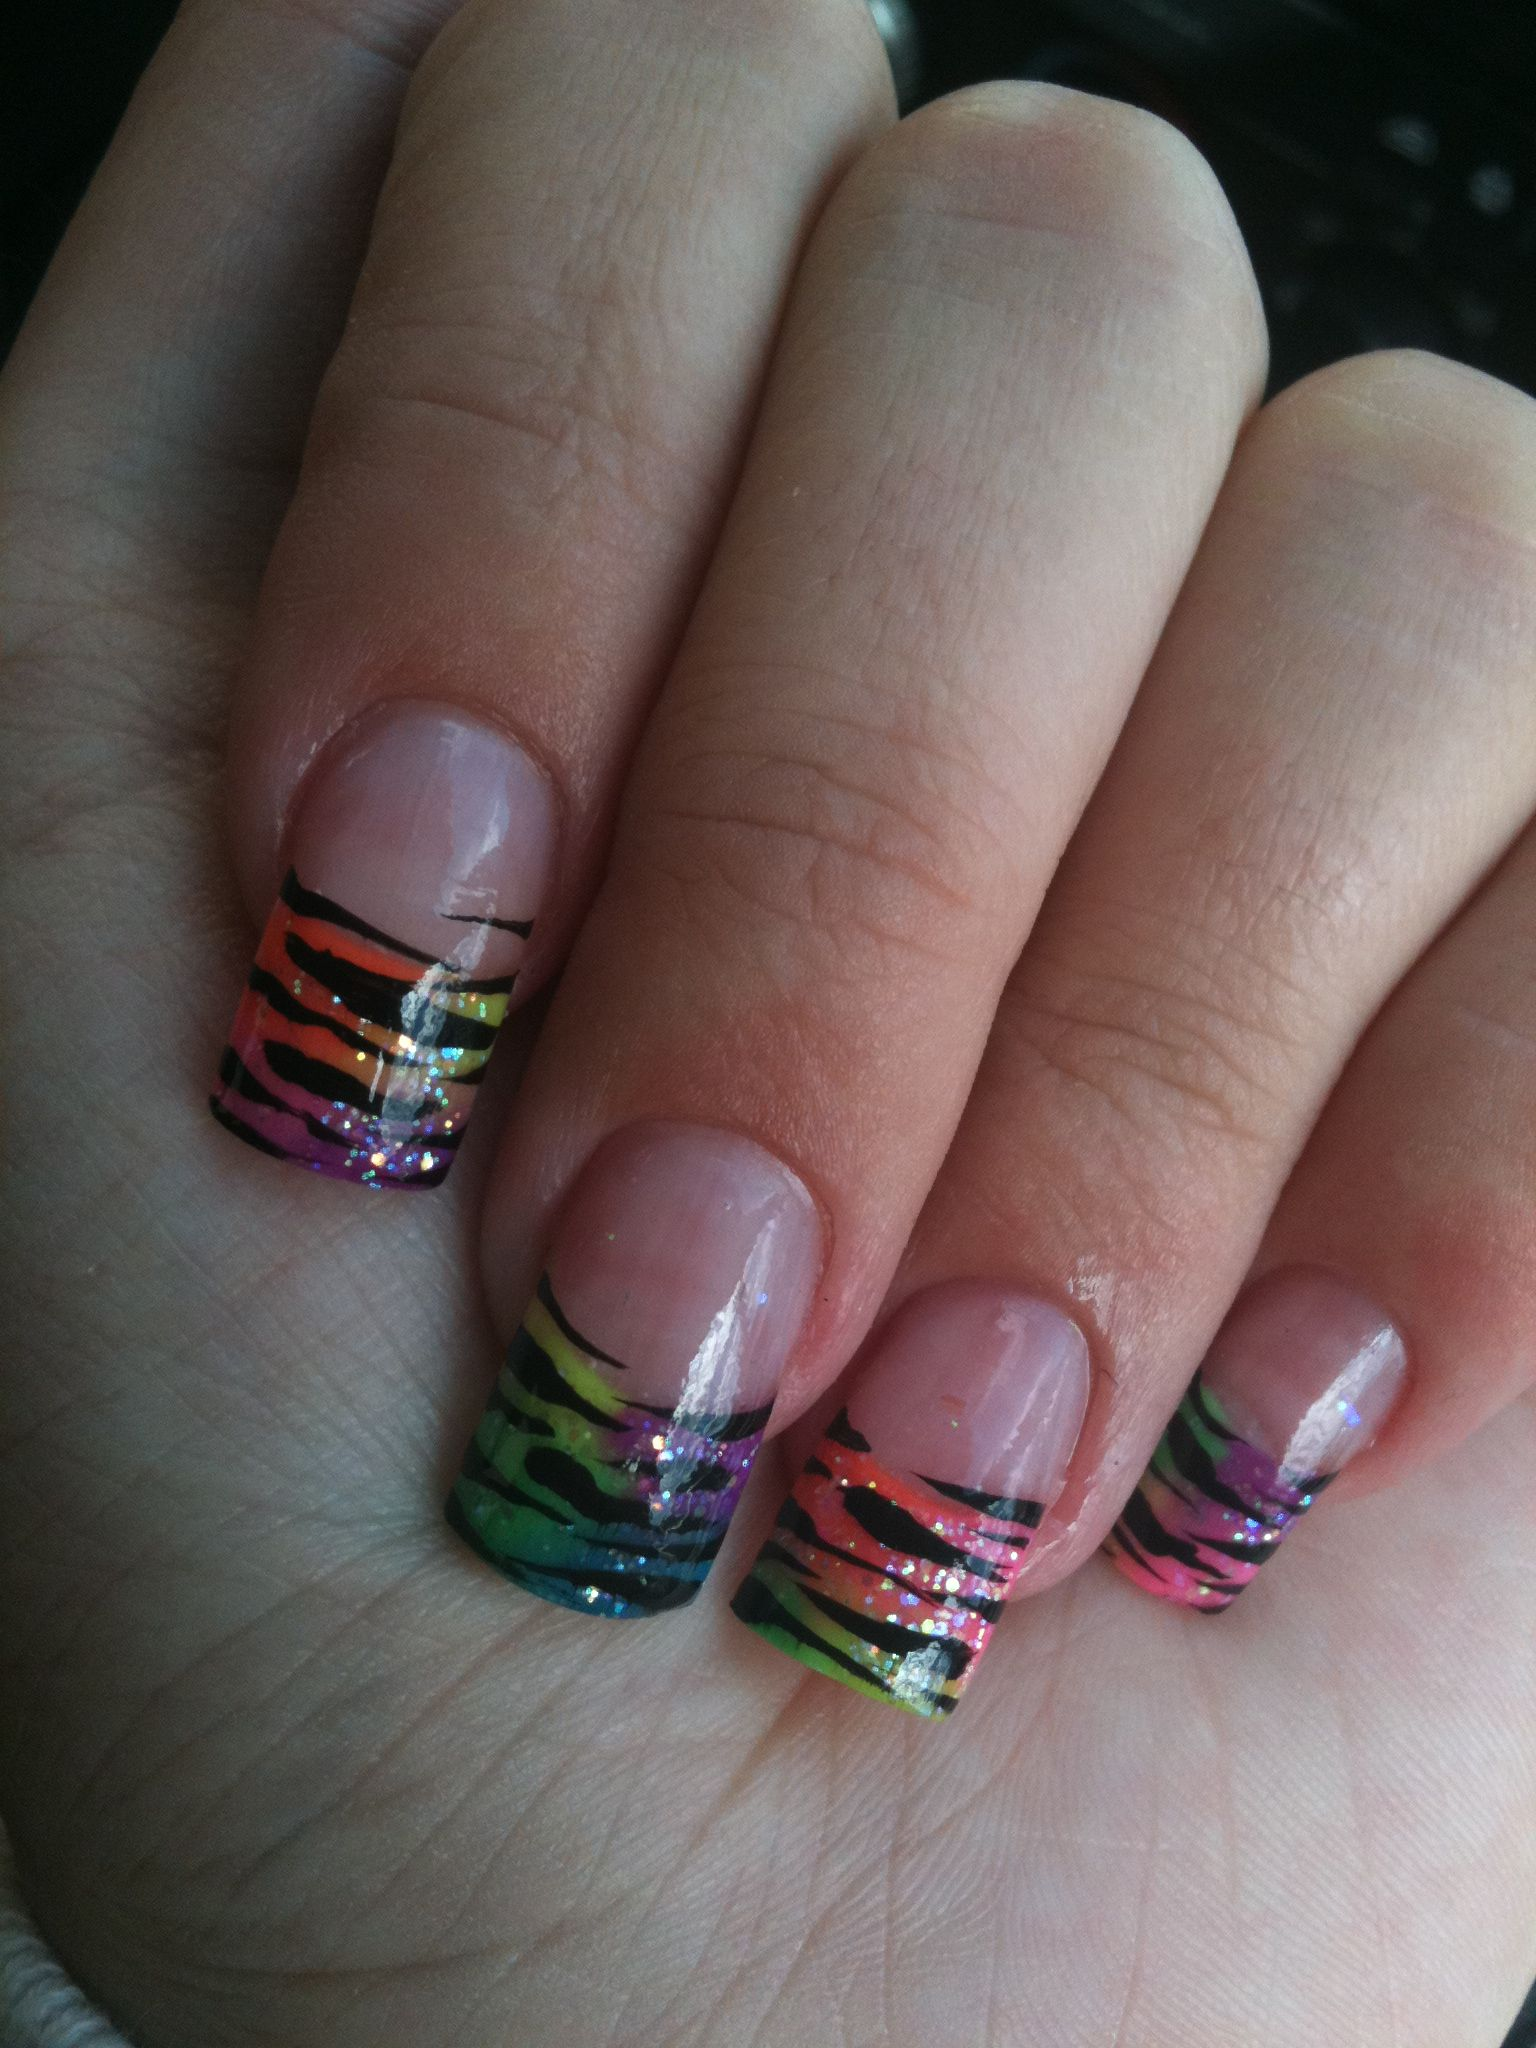 Nail Designs Zebra Stripes Acrylic Nails Designs Zebra